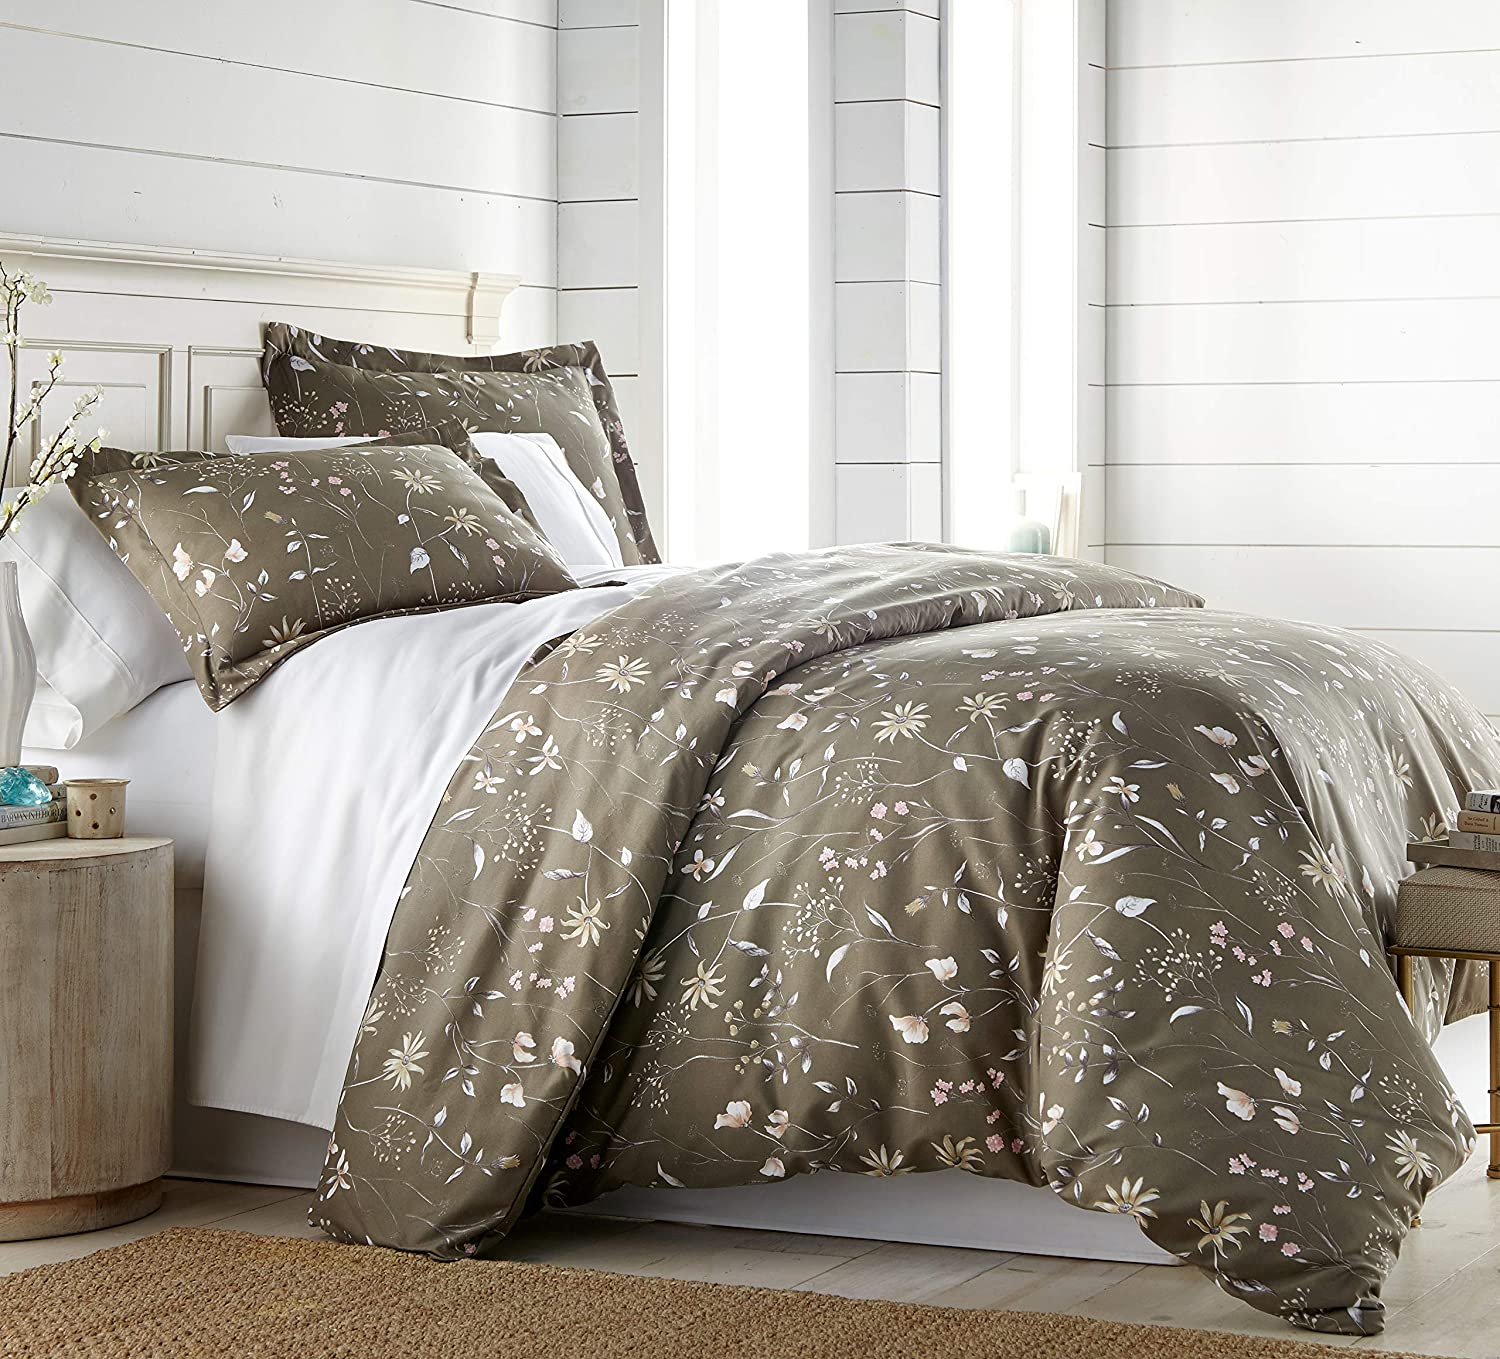 Southshore Fine Living, Inc. The Secret Meadow Collection Comforter Sets, 3 Piece Set, King/California King, Olive Brown